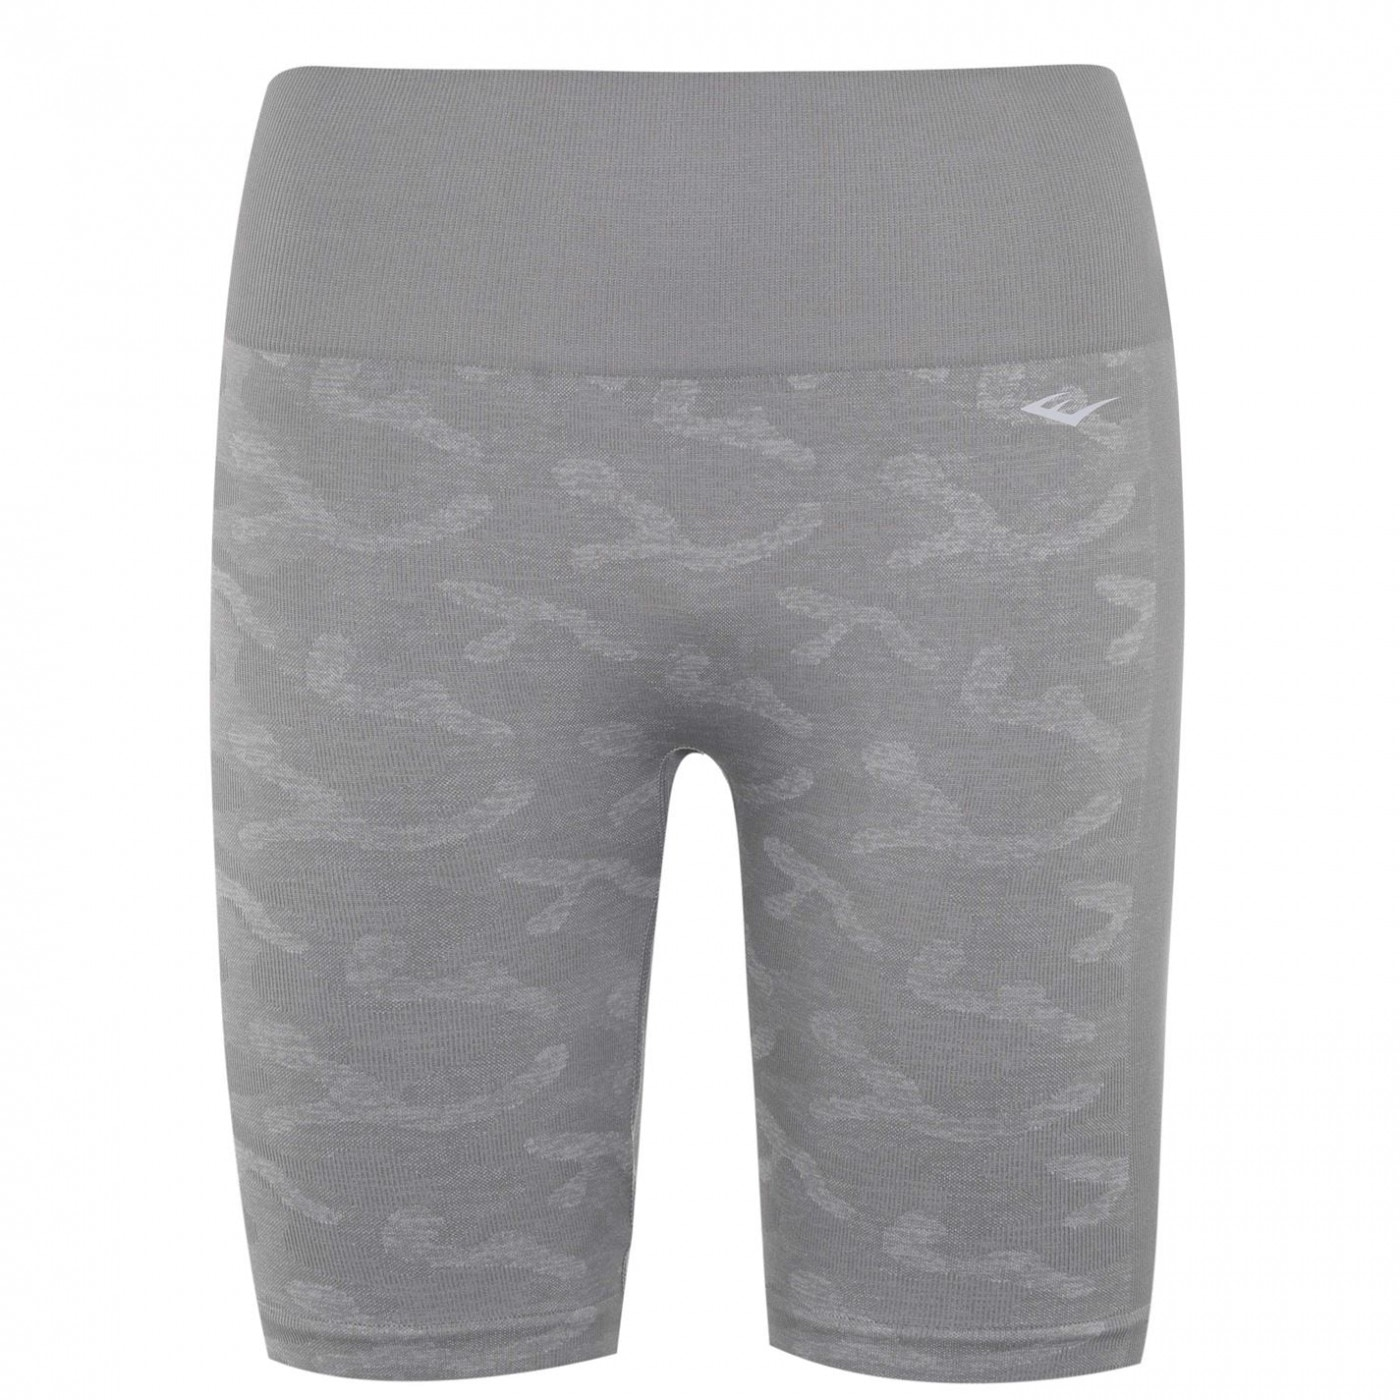 Everlast Camo Shorts Ld03